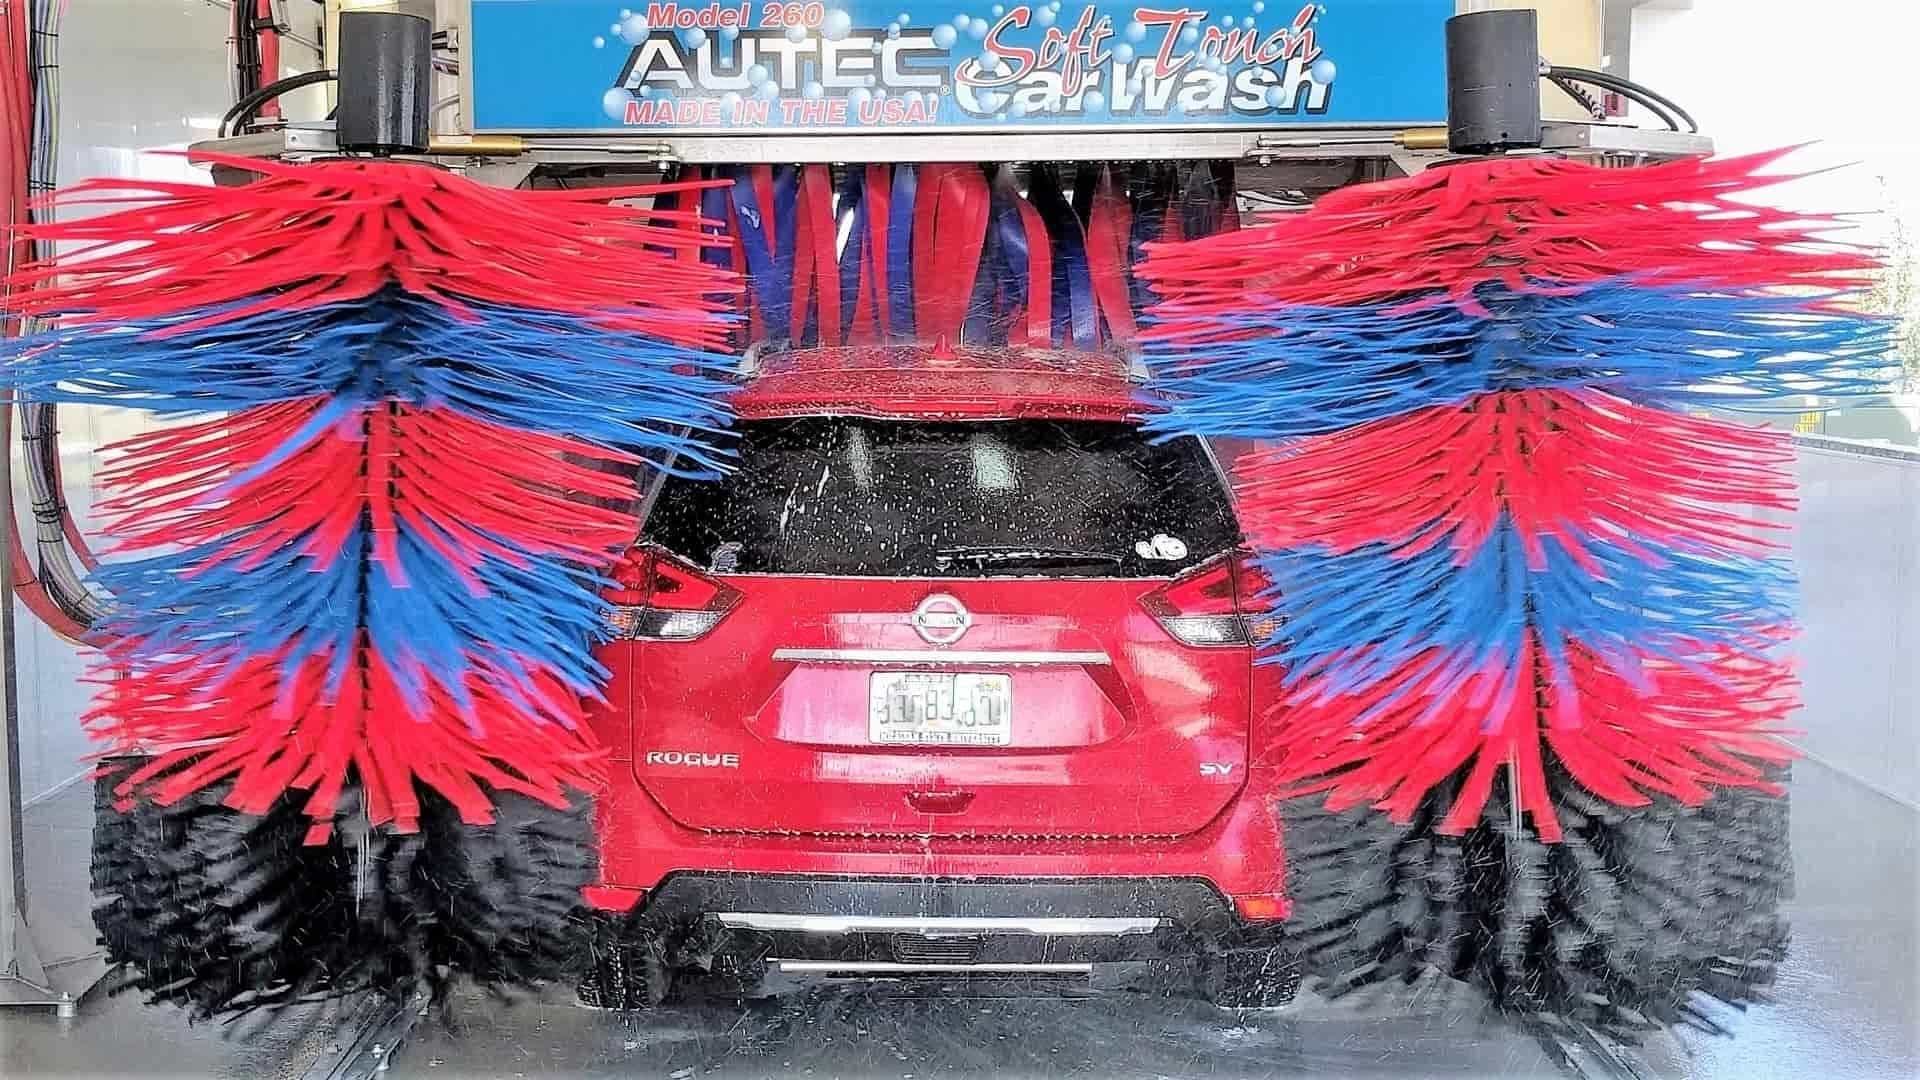 Austin Self Serve Car Wash